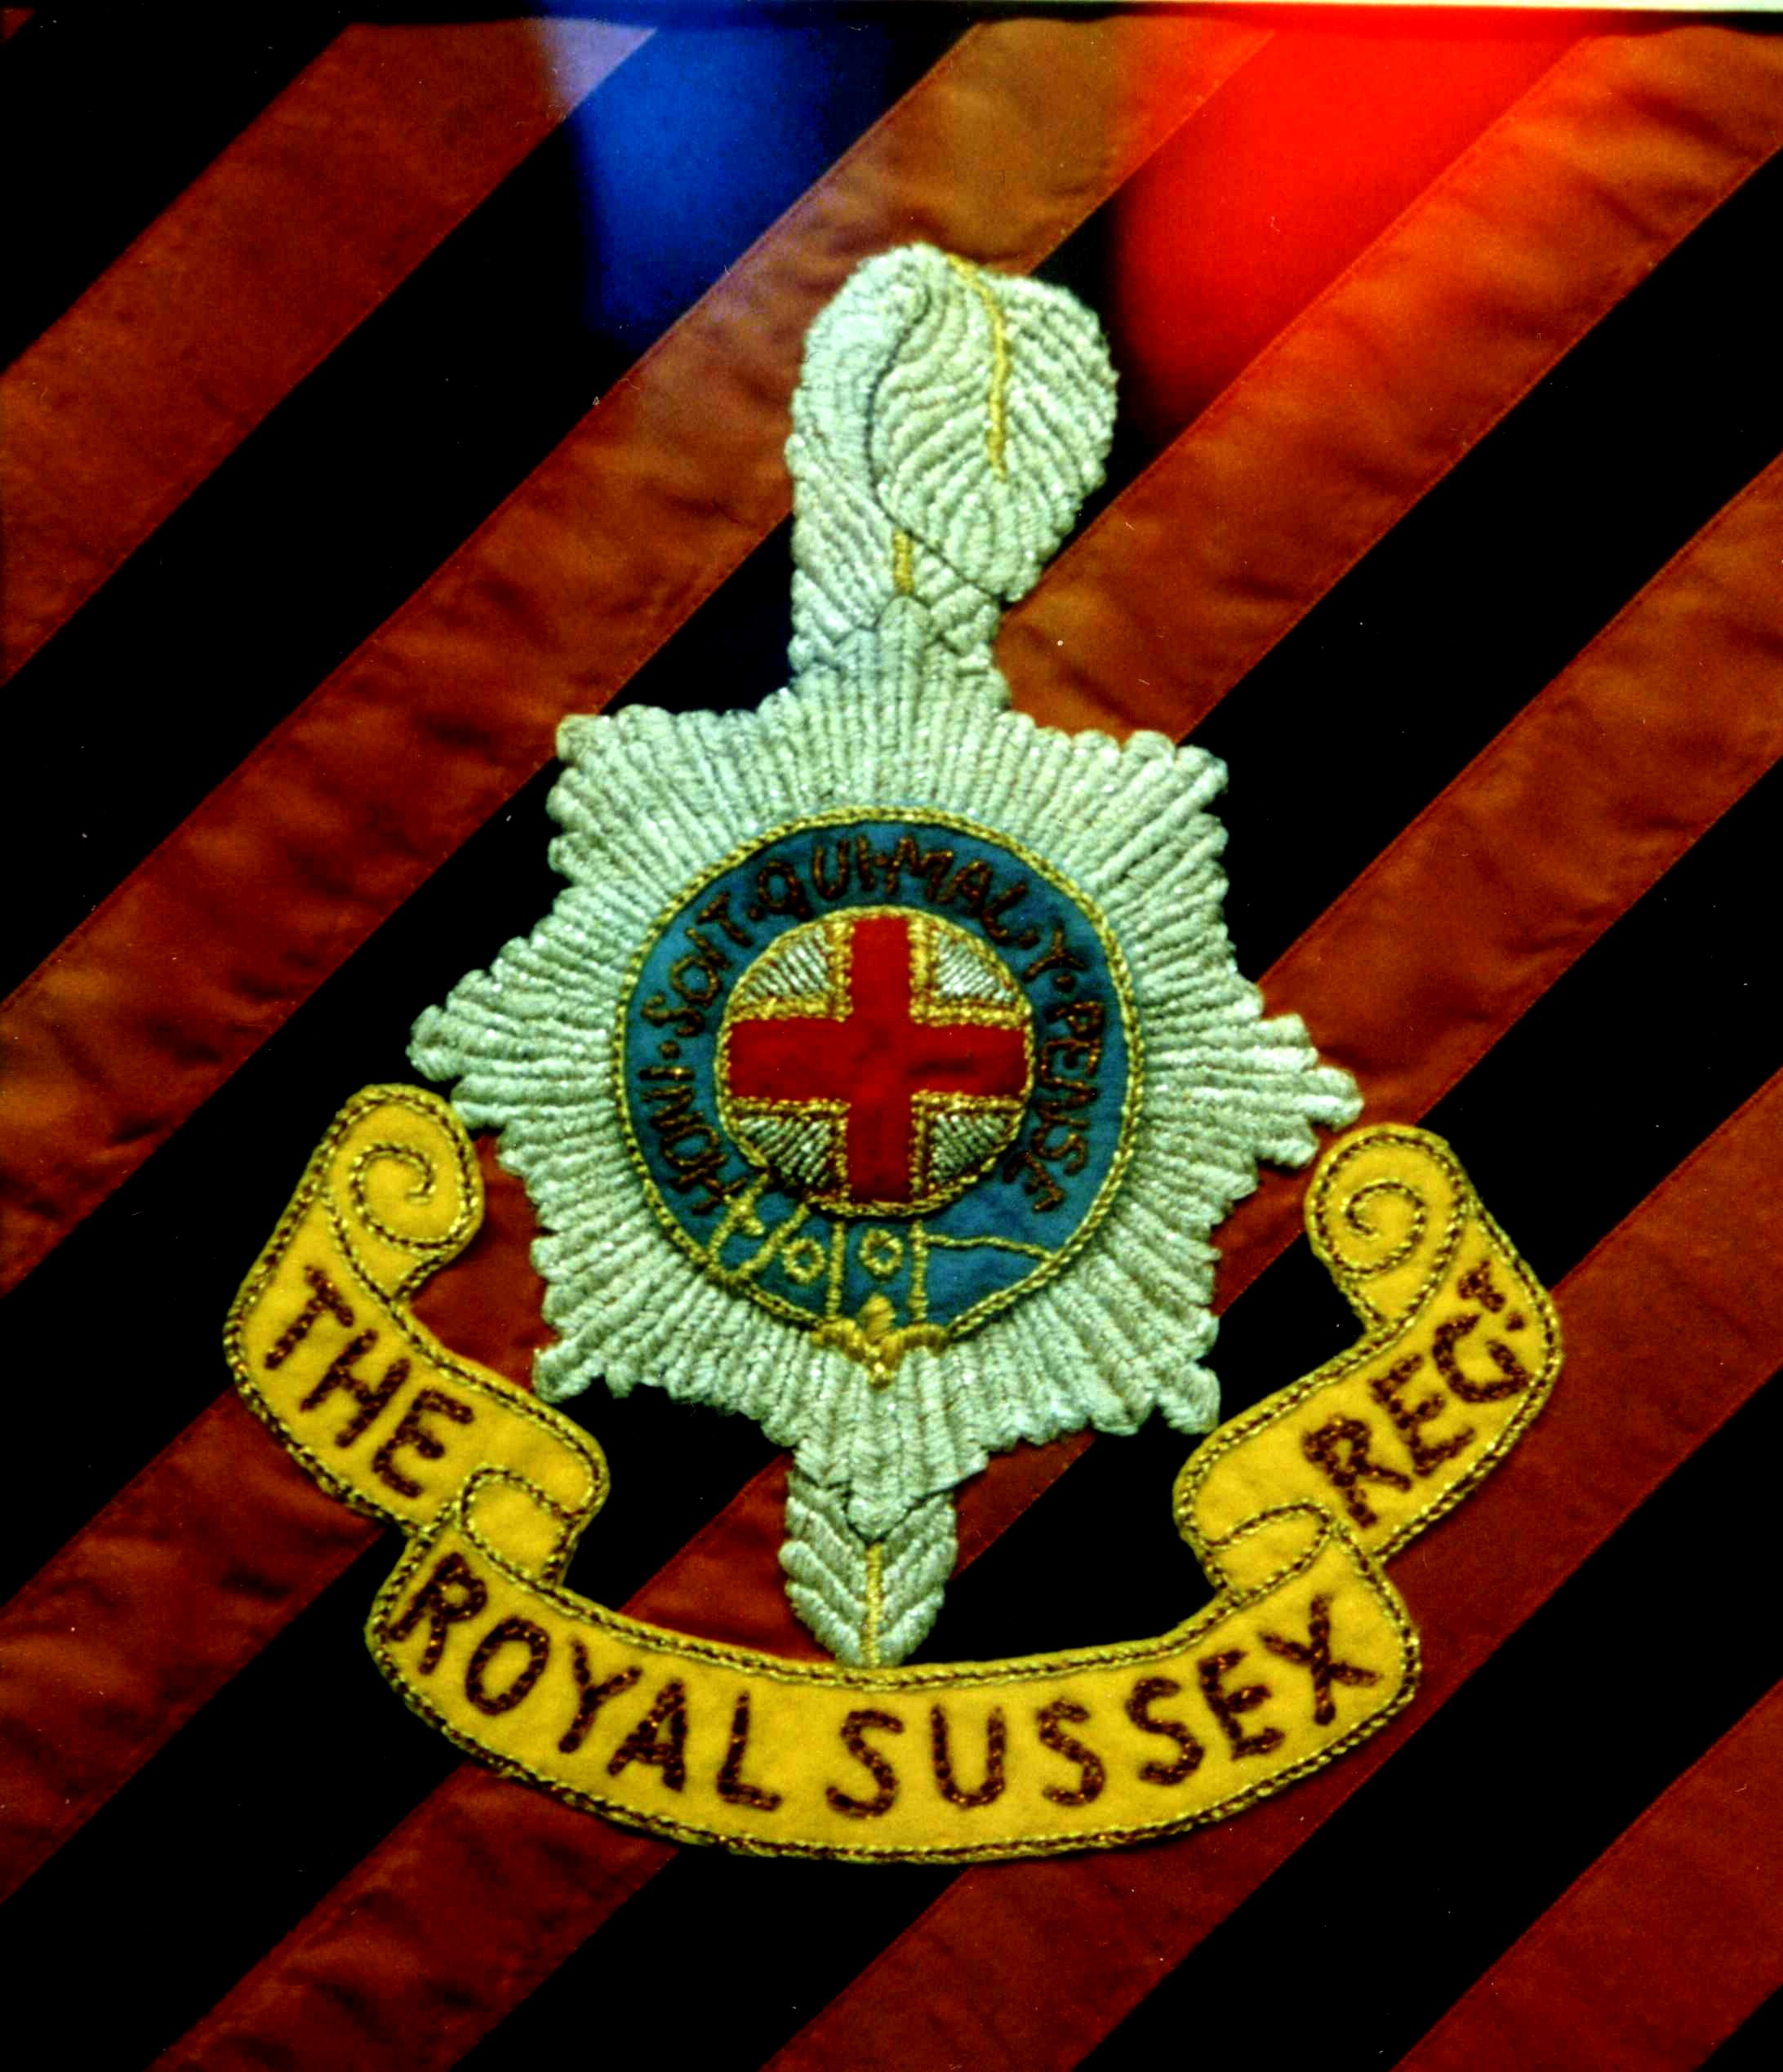 Royal Sussex Regiment Embroidery